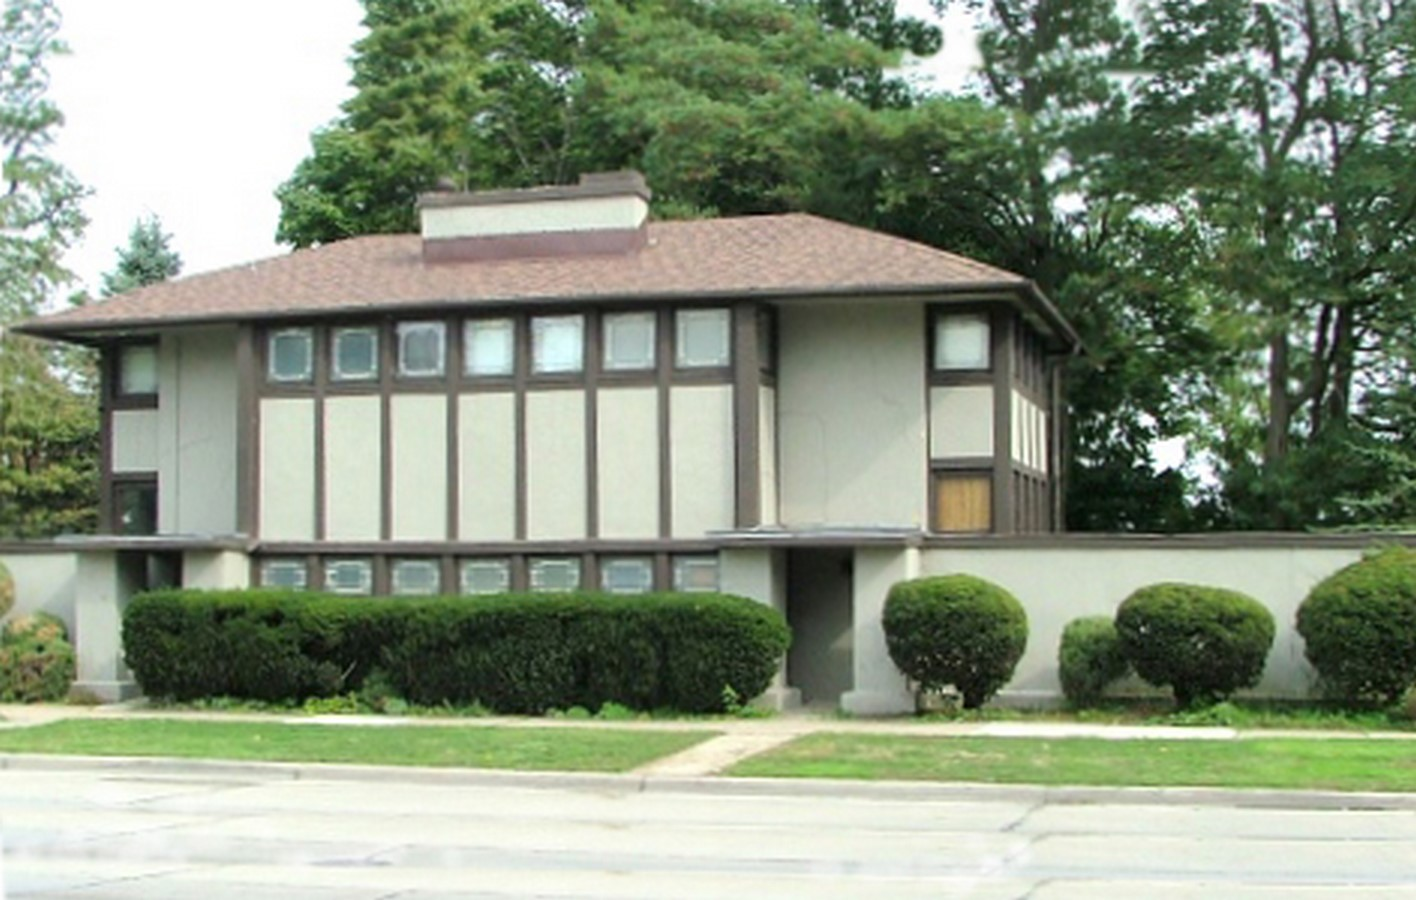 Thomas P Hardy House in Wisconsin, Racine by Ar. Frank Llyod Wright Sheet2